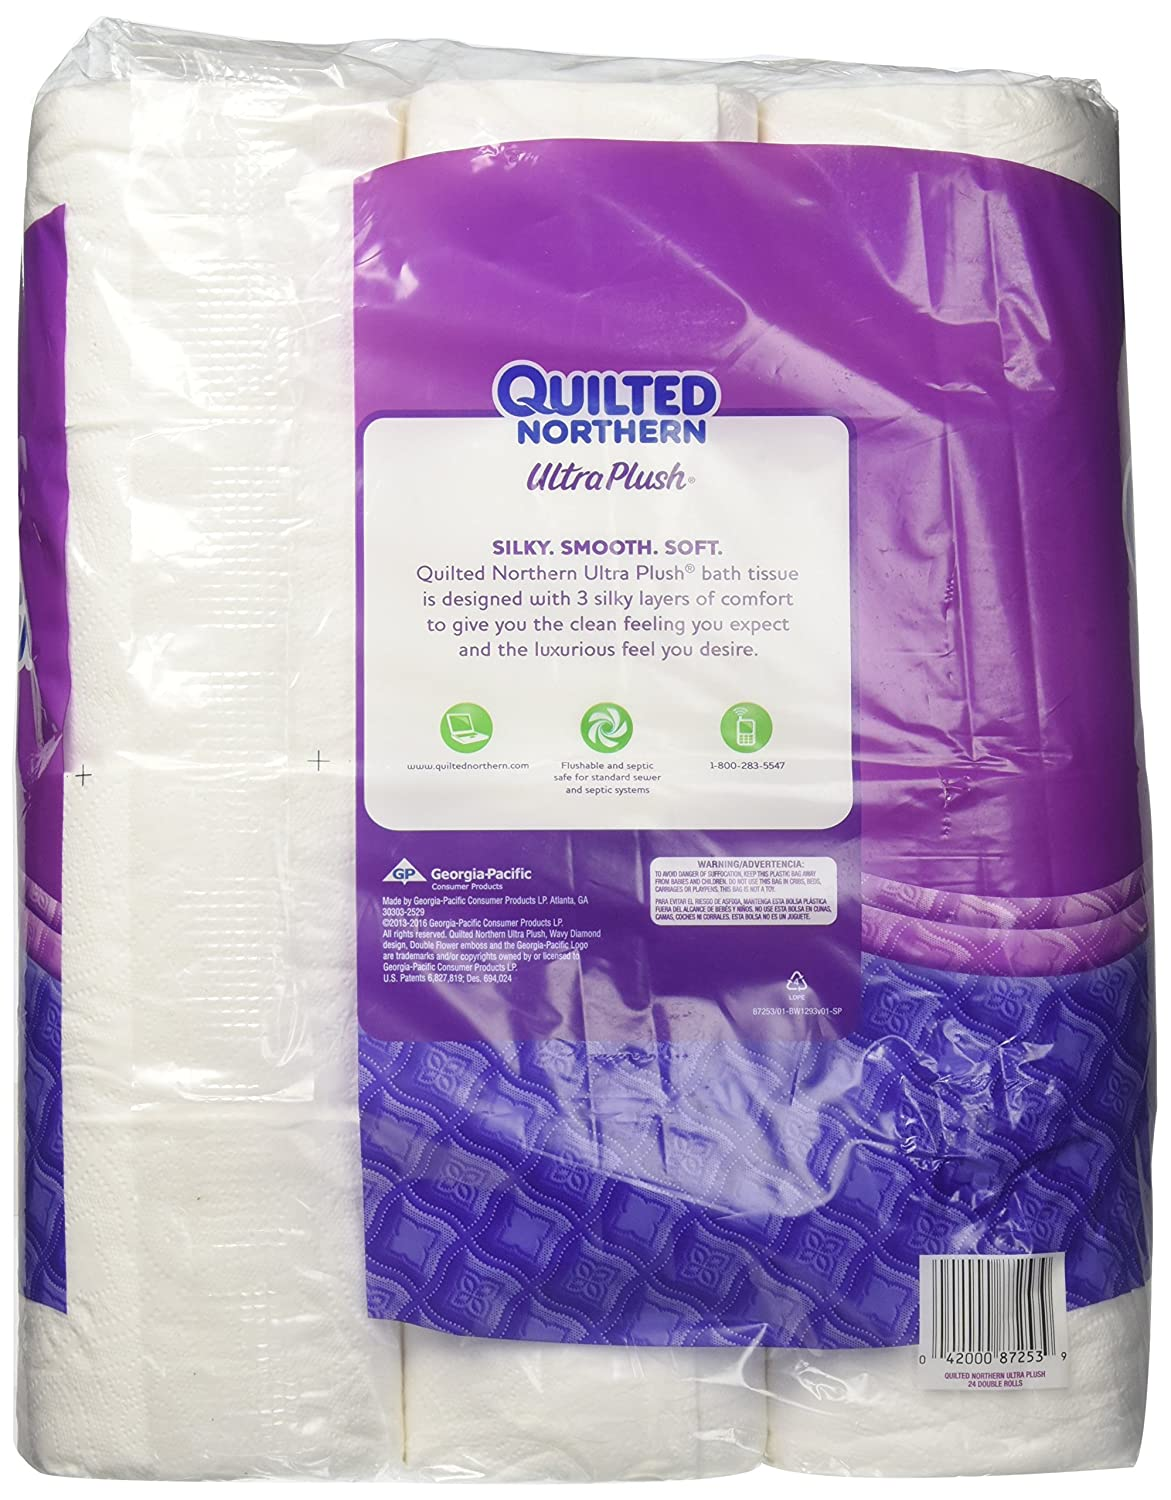 Amazon.com: Quilted Northern Ultra Plush Toilet Tissue - Double Roll - 24 pk: Health & Personal Care